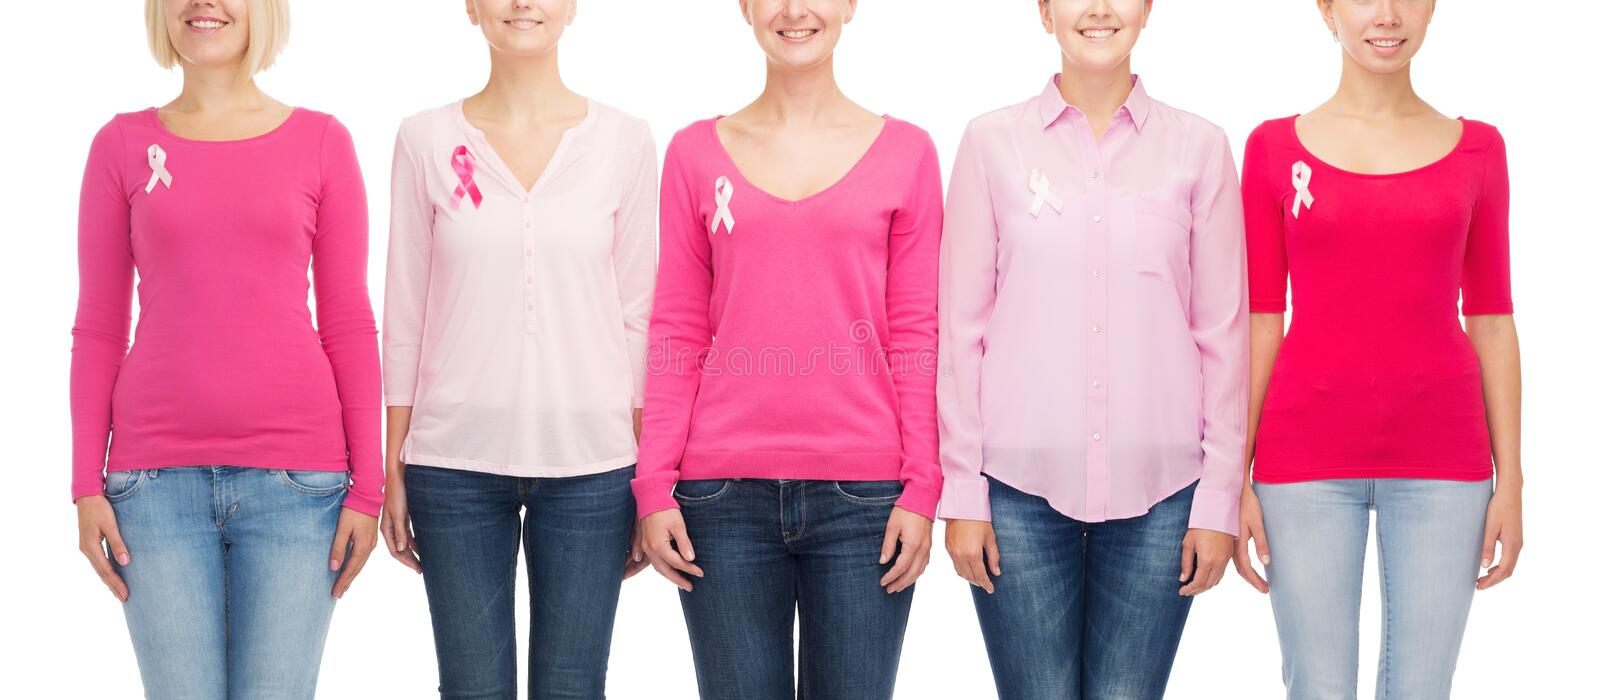 Close up of women with cancer awareness ribbons royalty free stock images